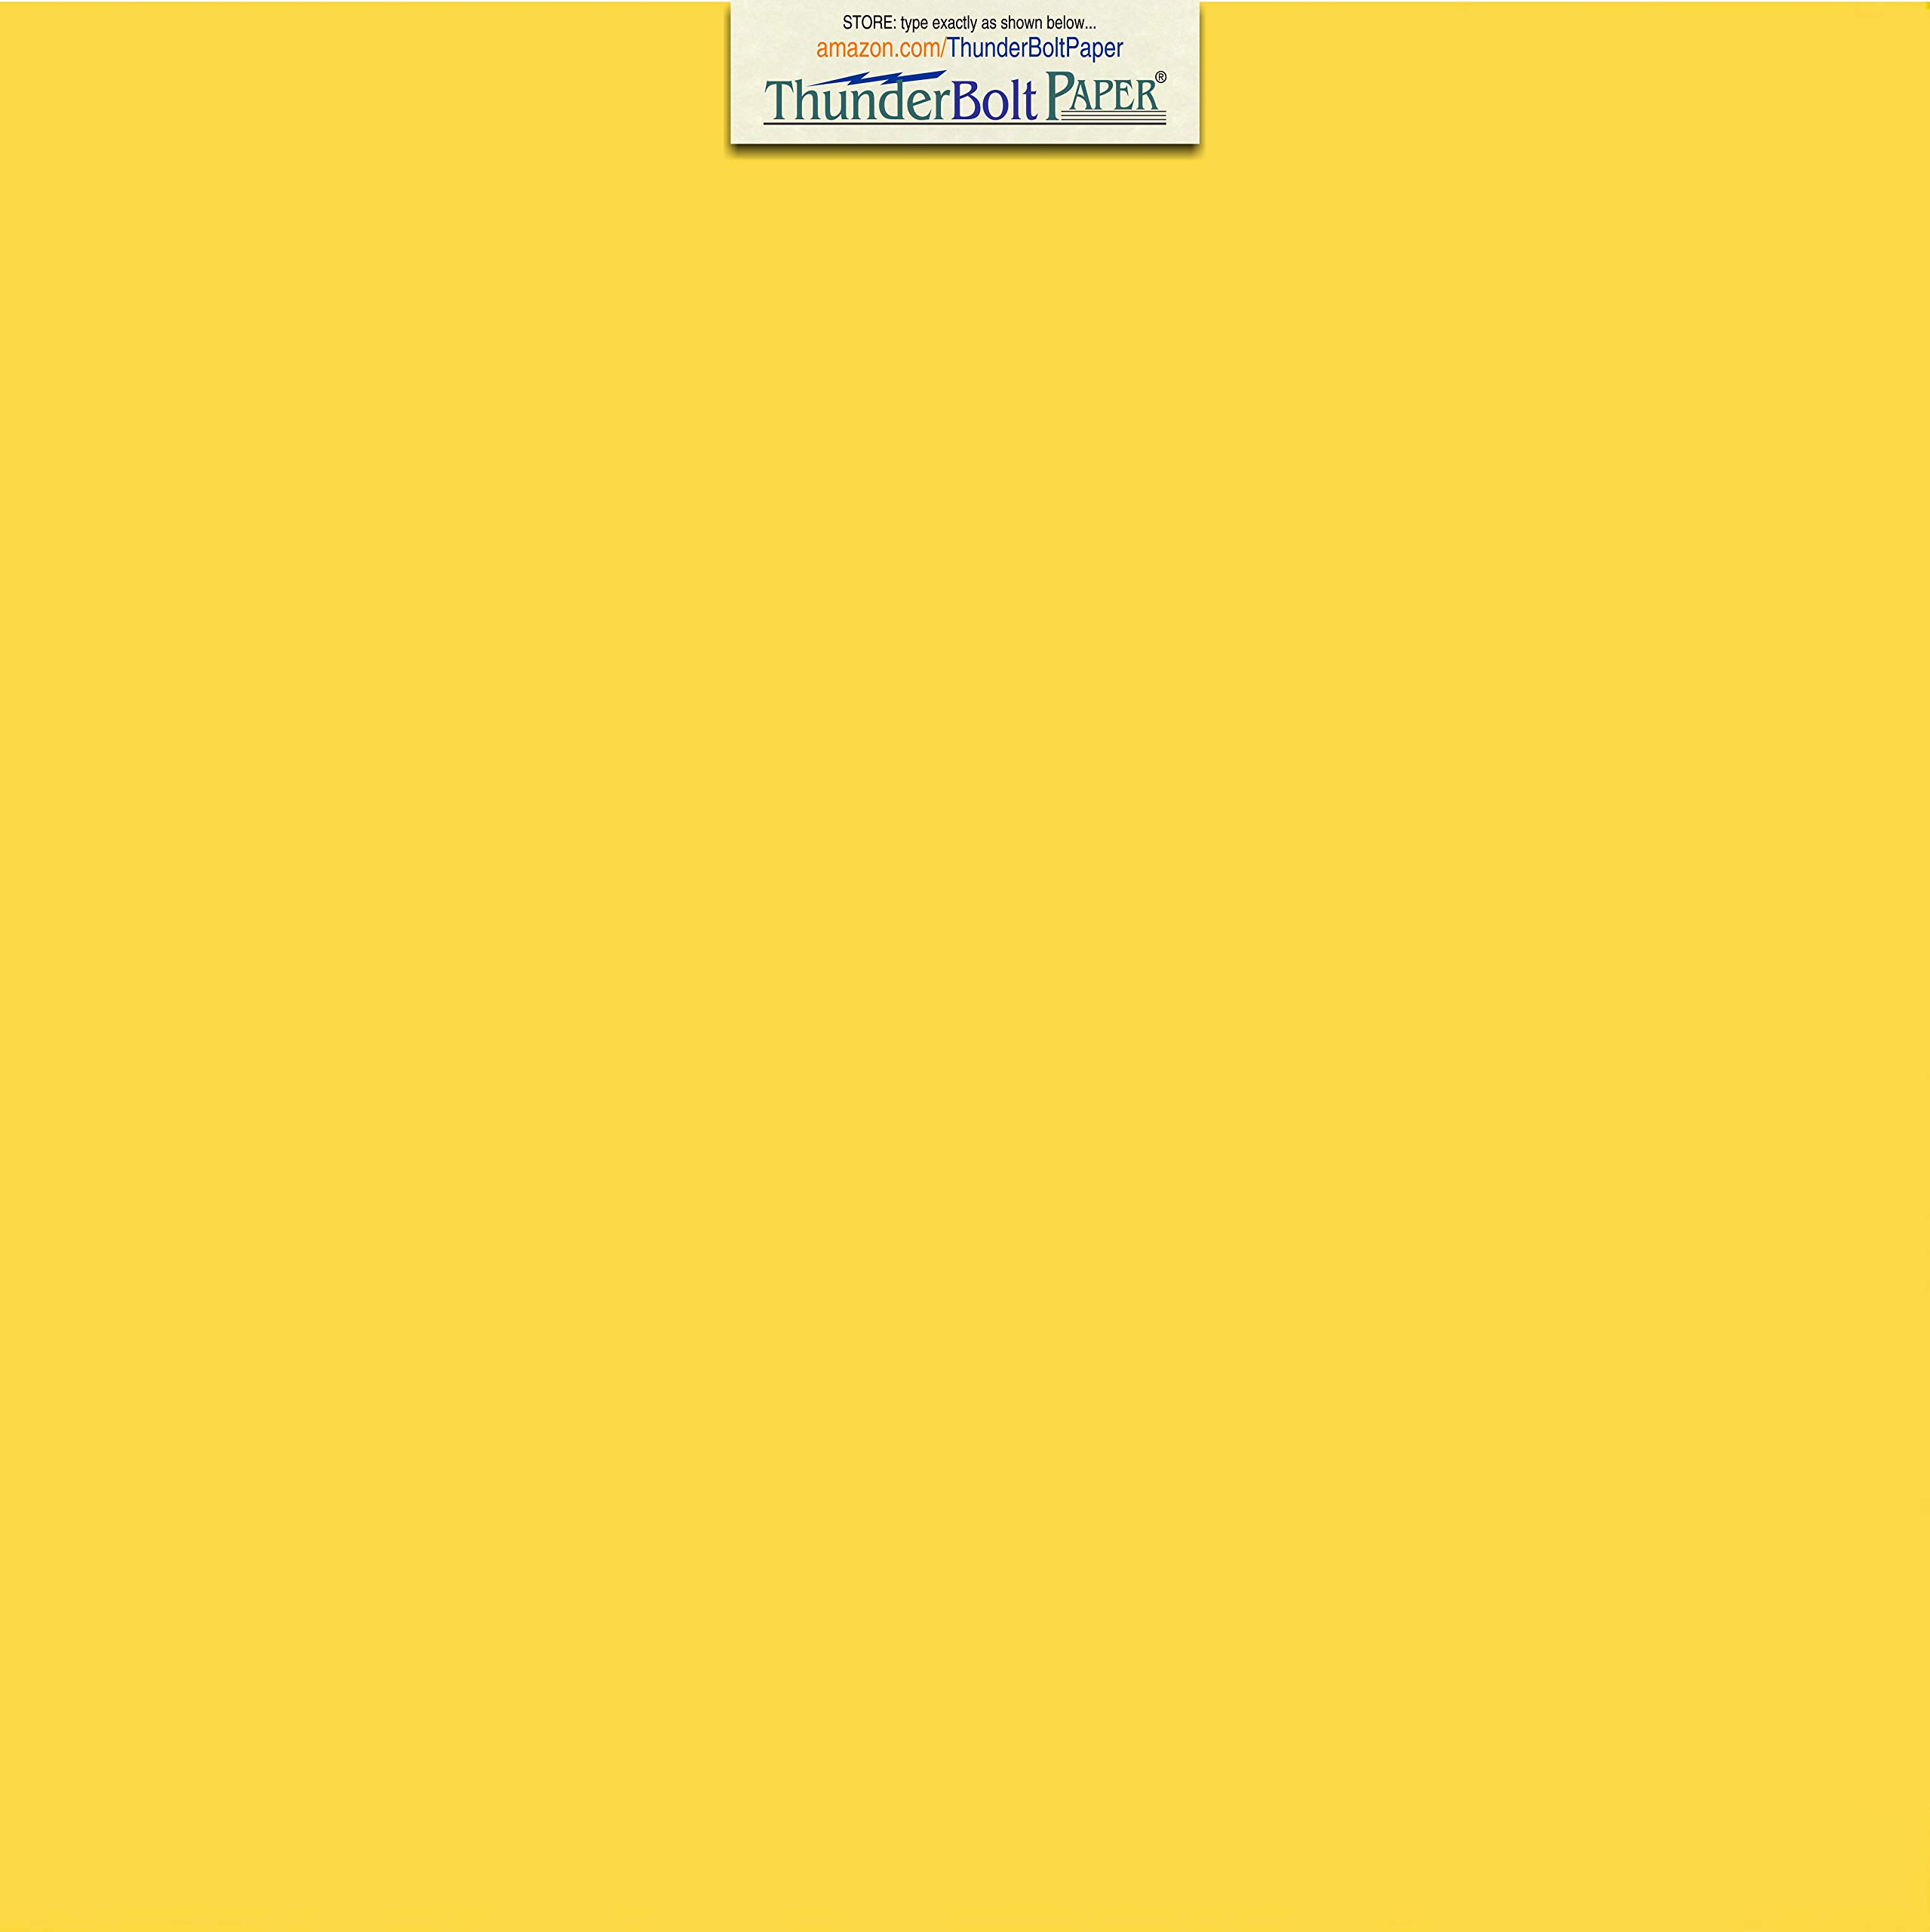 100 Bright Golden Yellow 65lb Cover|Card Paper - 12'' X 12'' (12X12 Inches) Scrapbook Album|Cover Size - 65 lb/pound Light Weight Cardstock - Quality Printable Smooth Surface for Bright Colorful Results